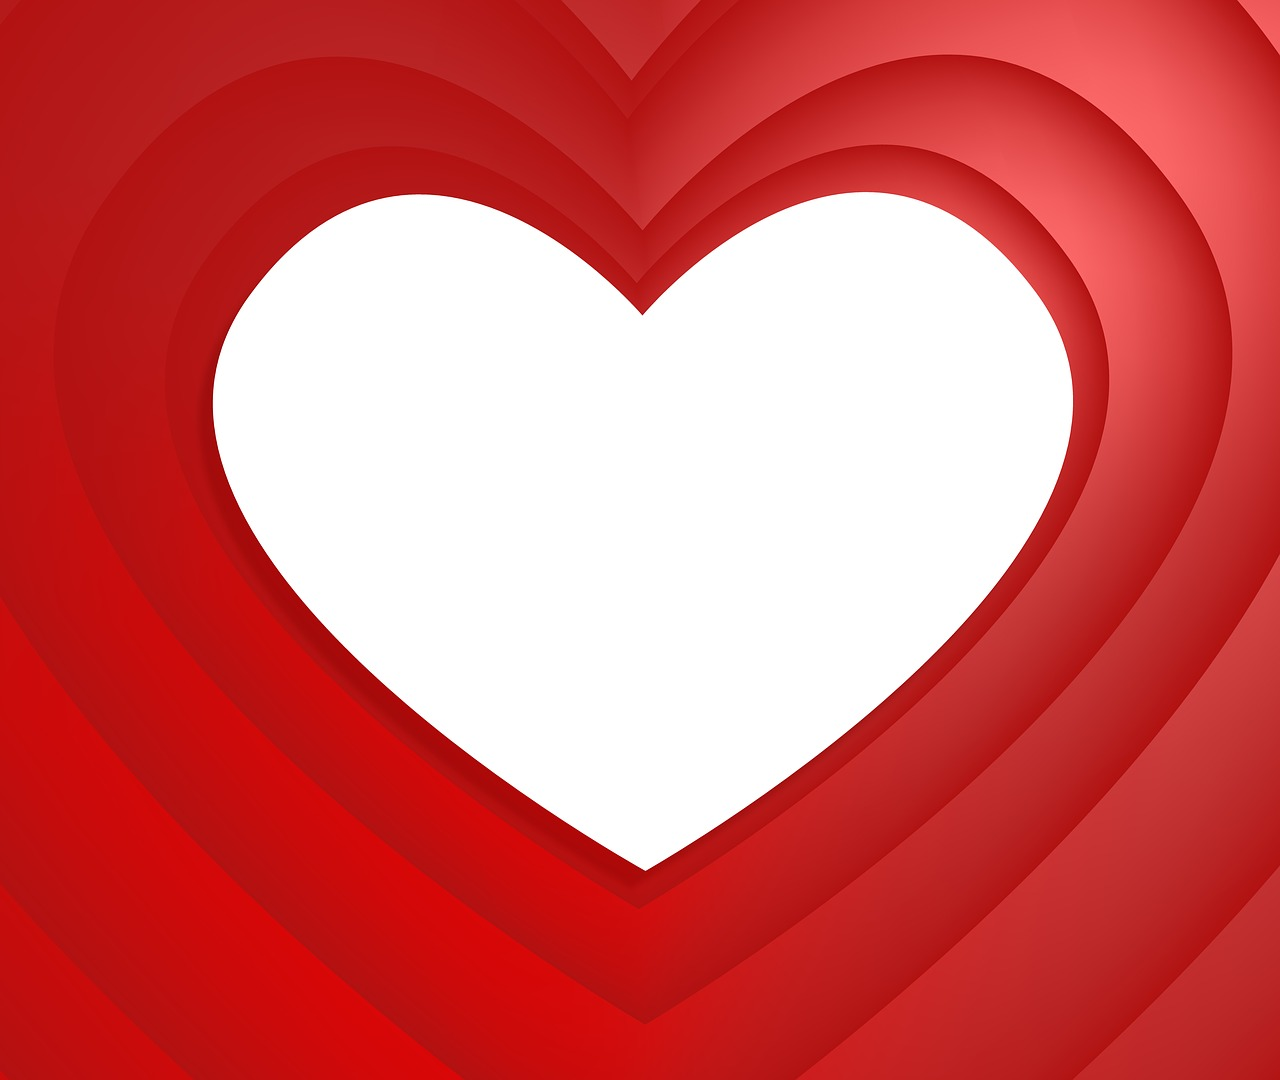 Heart Love Wallpaper Background Love Heart Free Image From